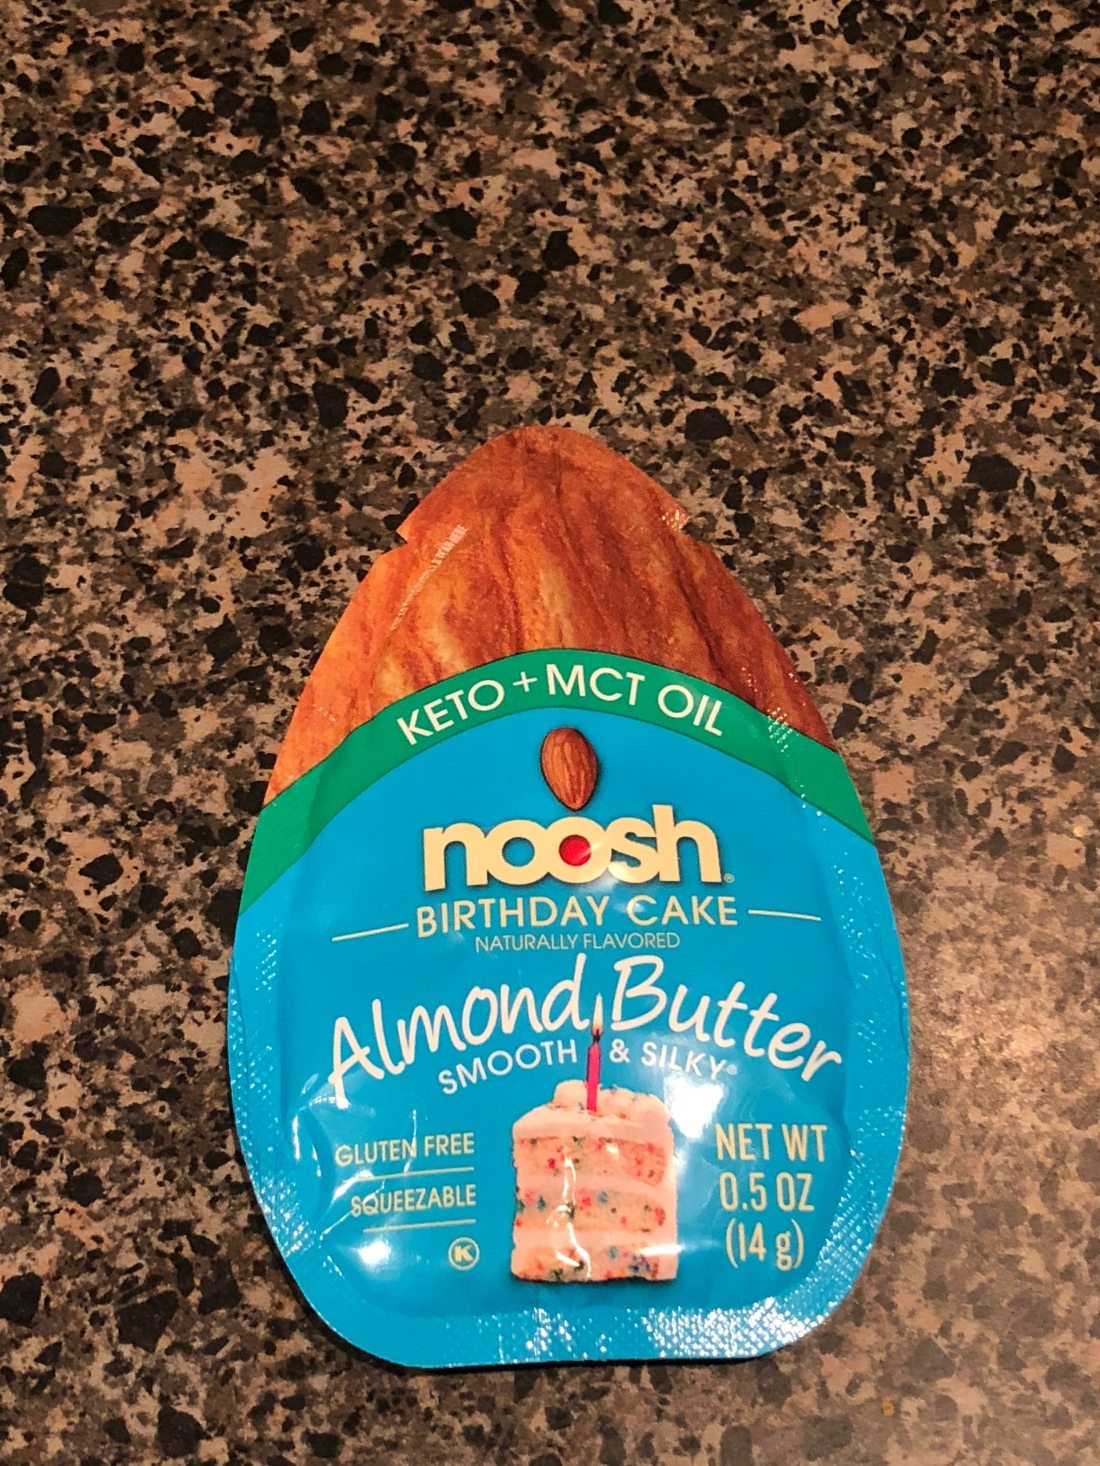 Noosh Keto Almond Butter Birthday Cake Review